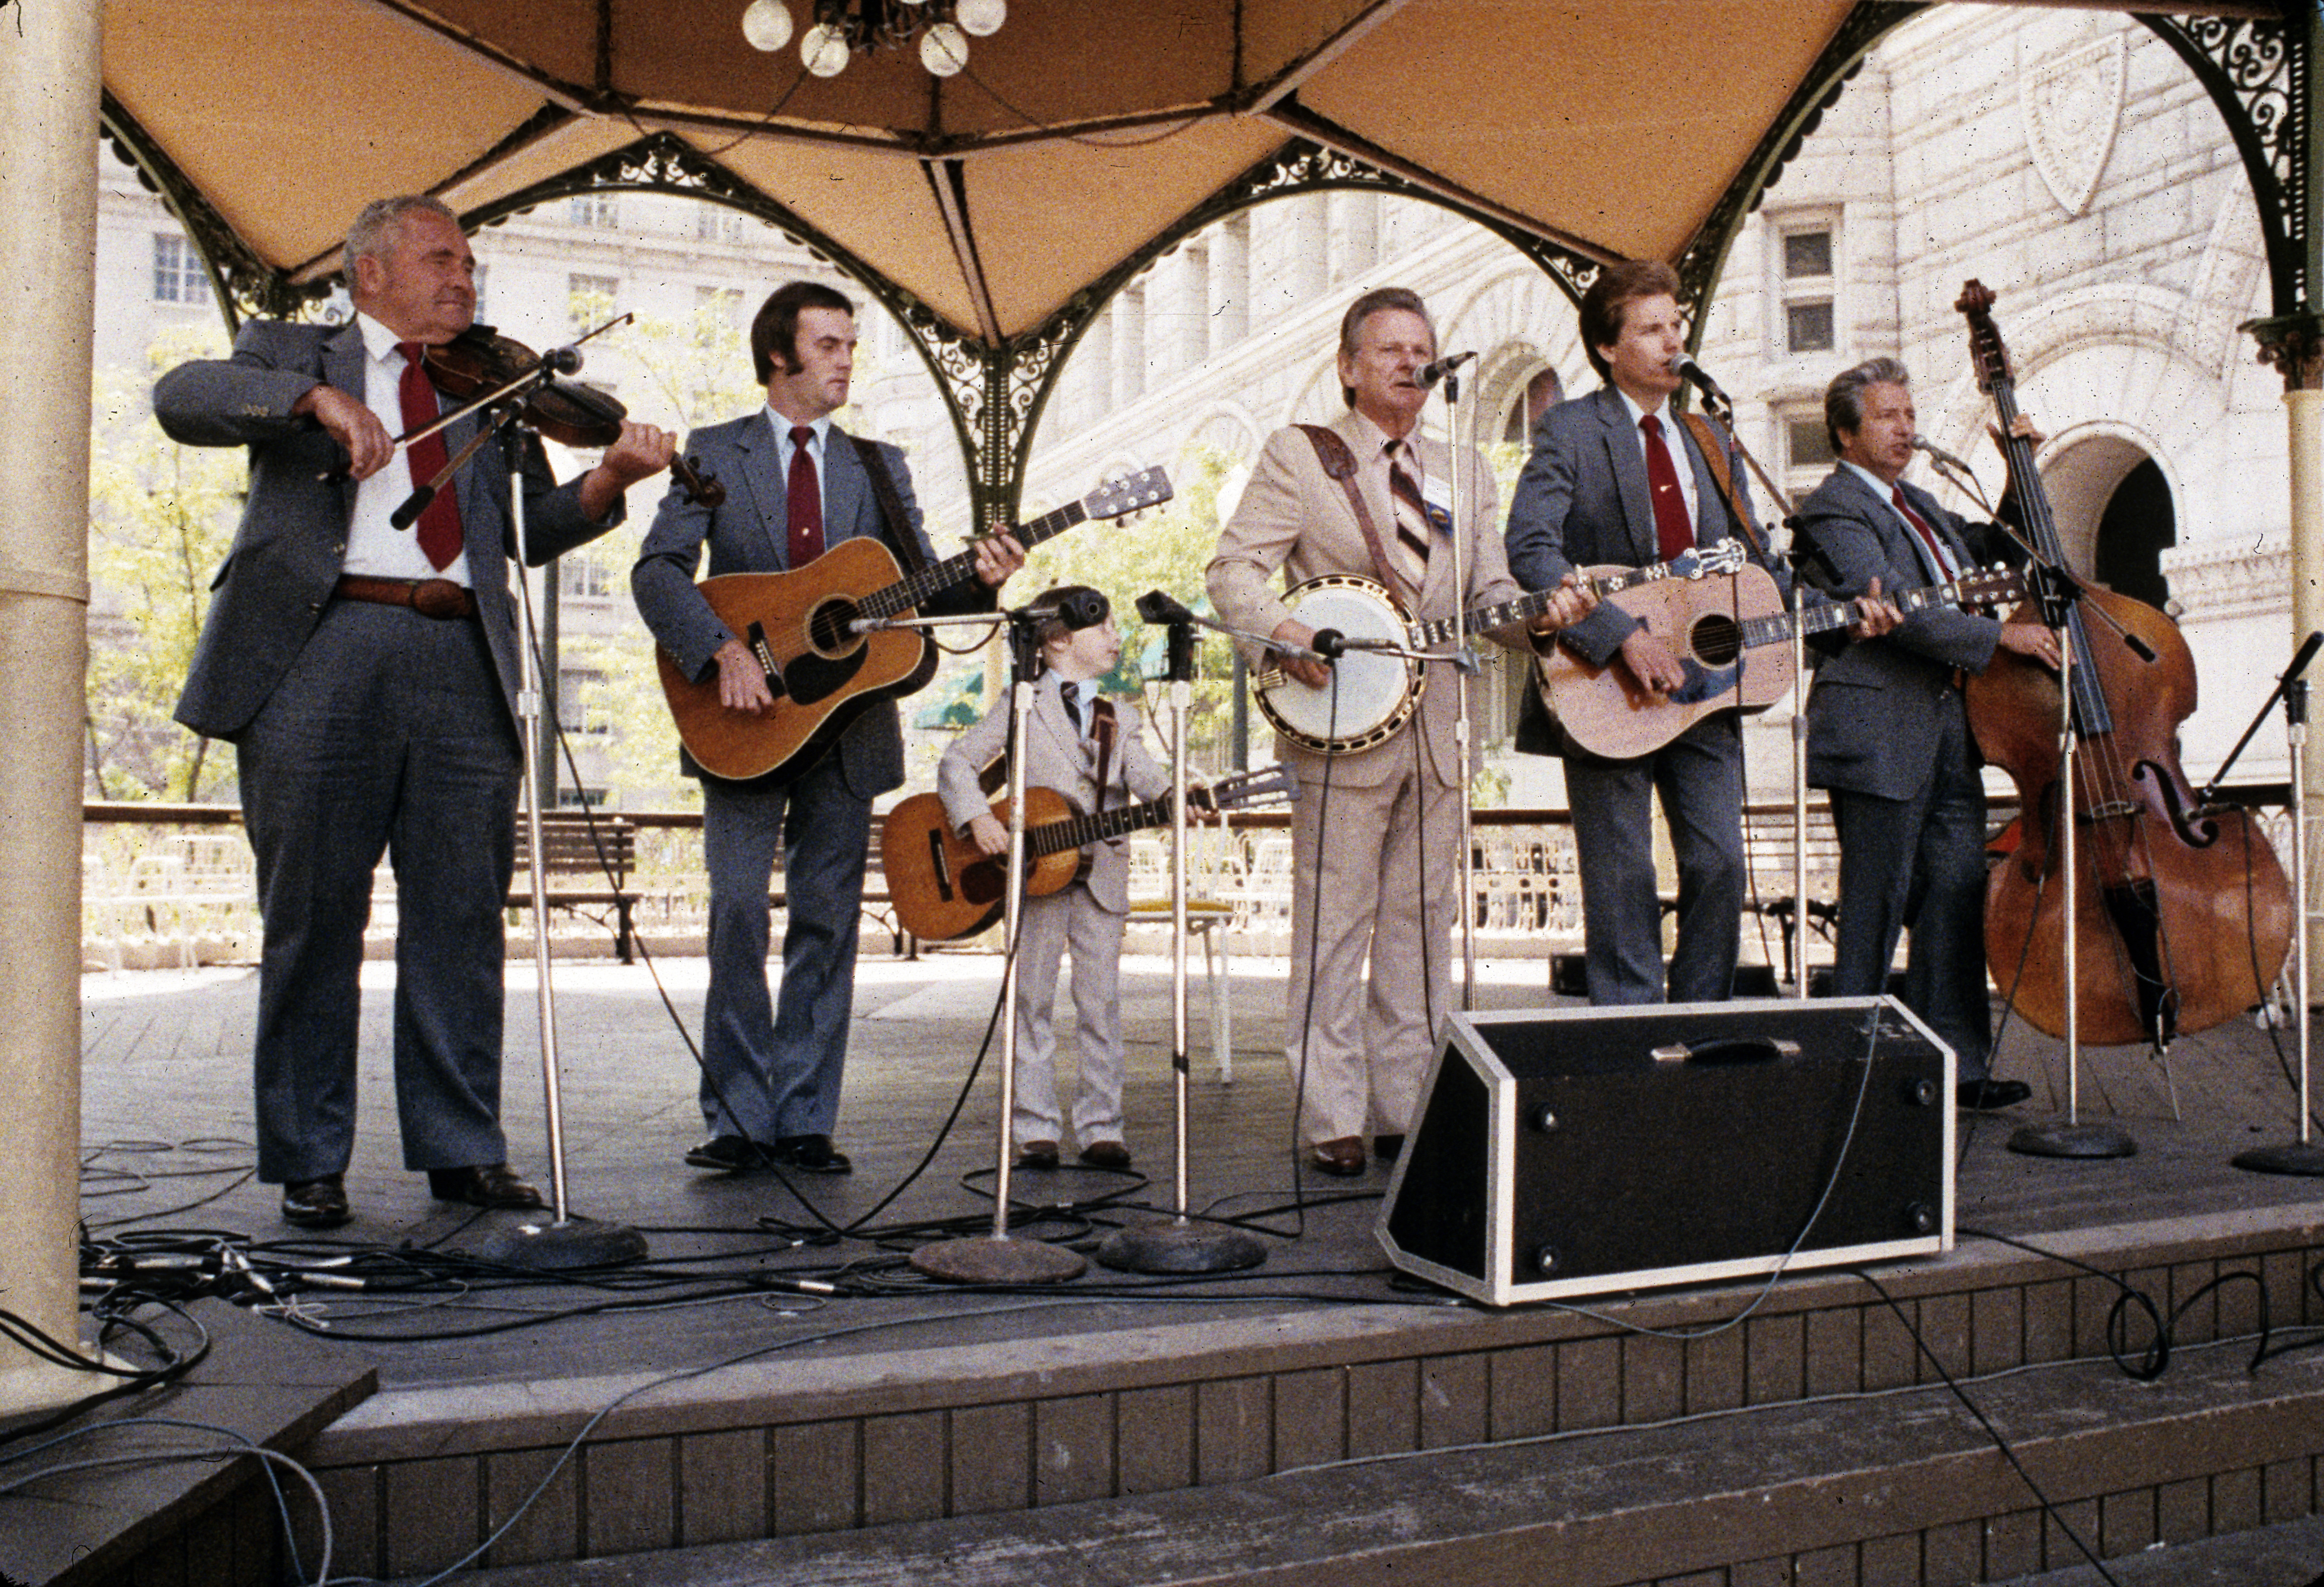 bluegrass band under tent performing in front of the Old Post Office building